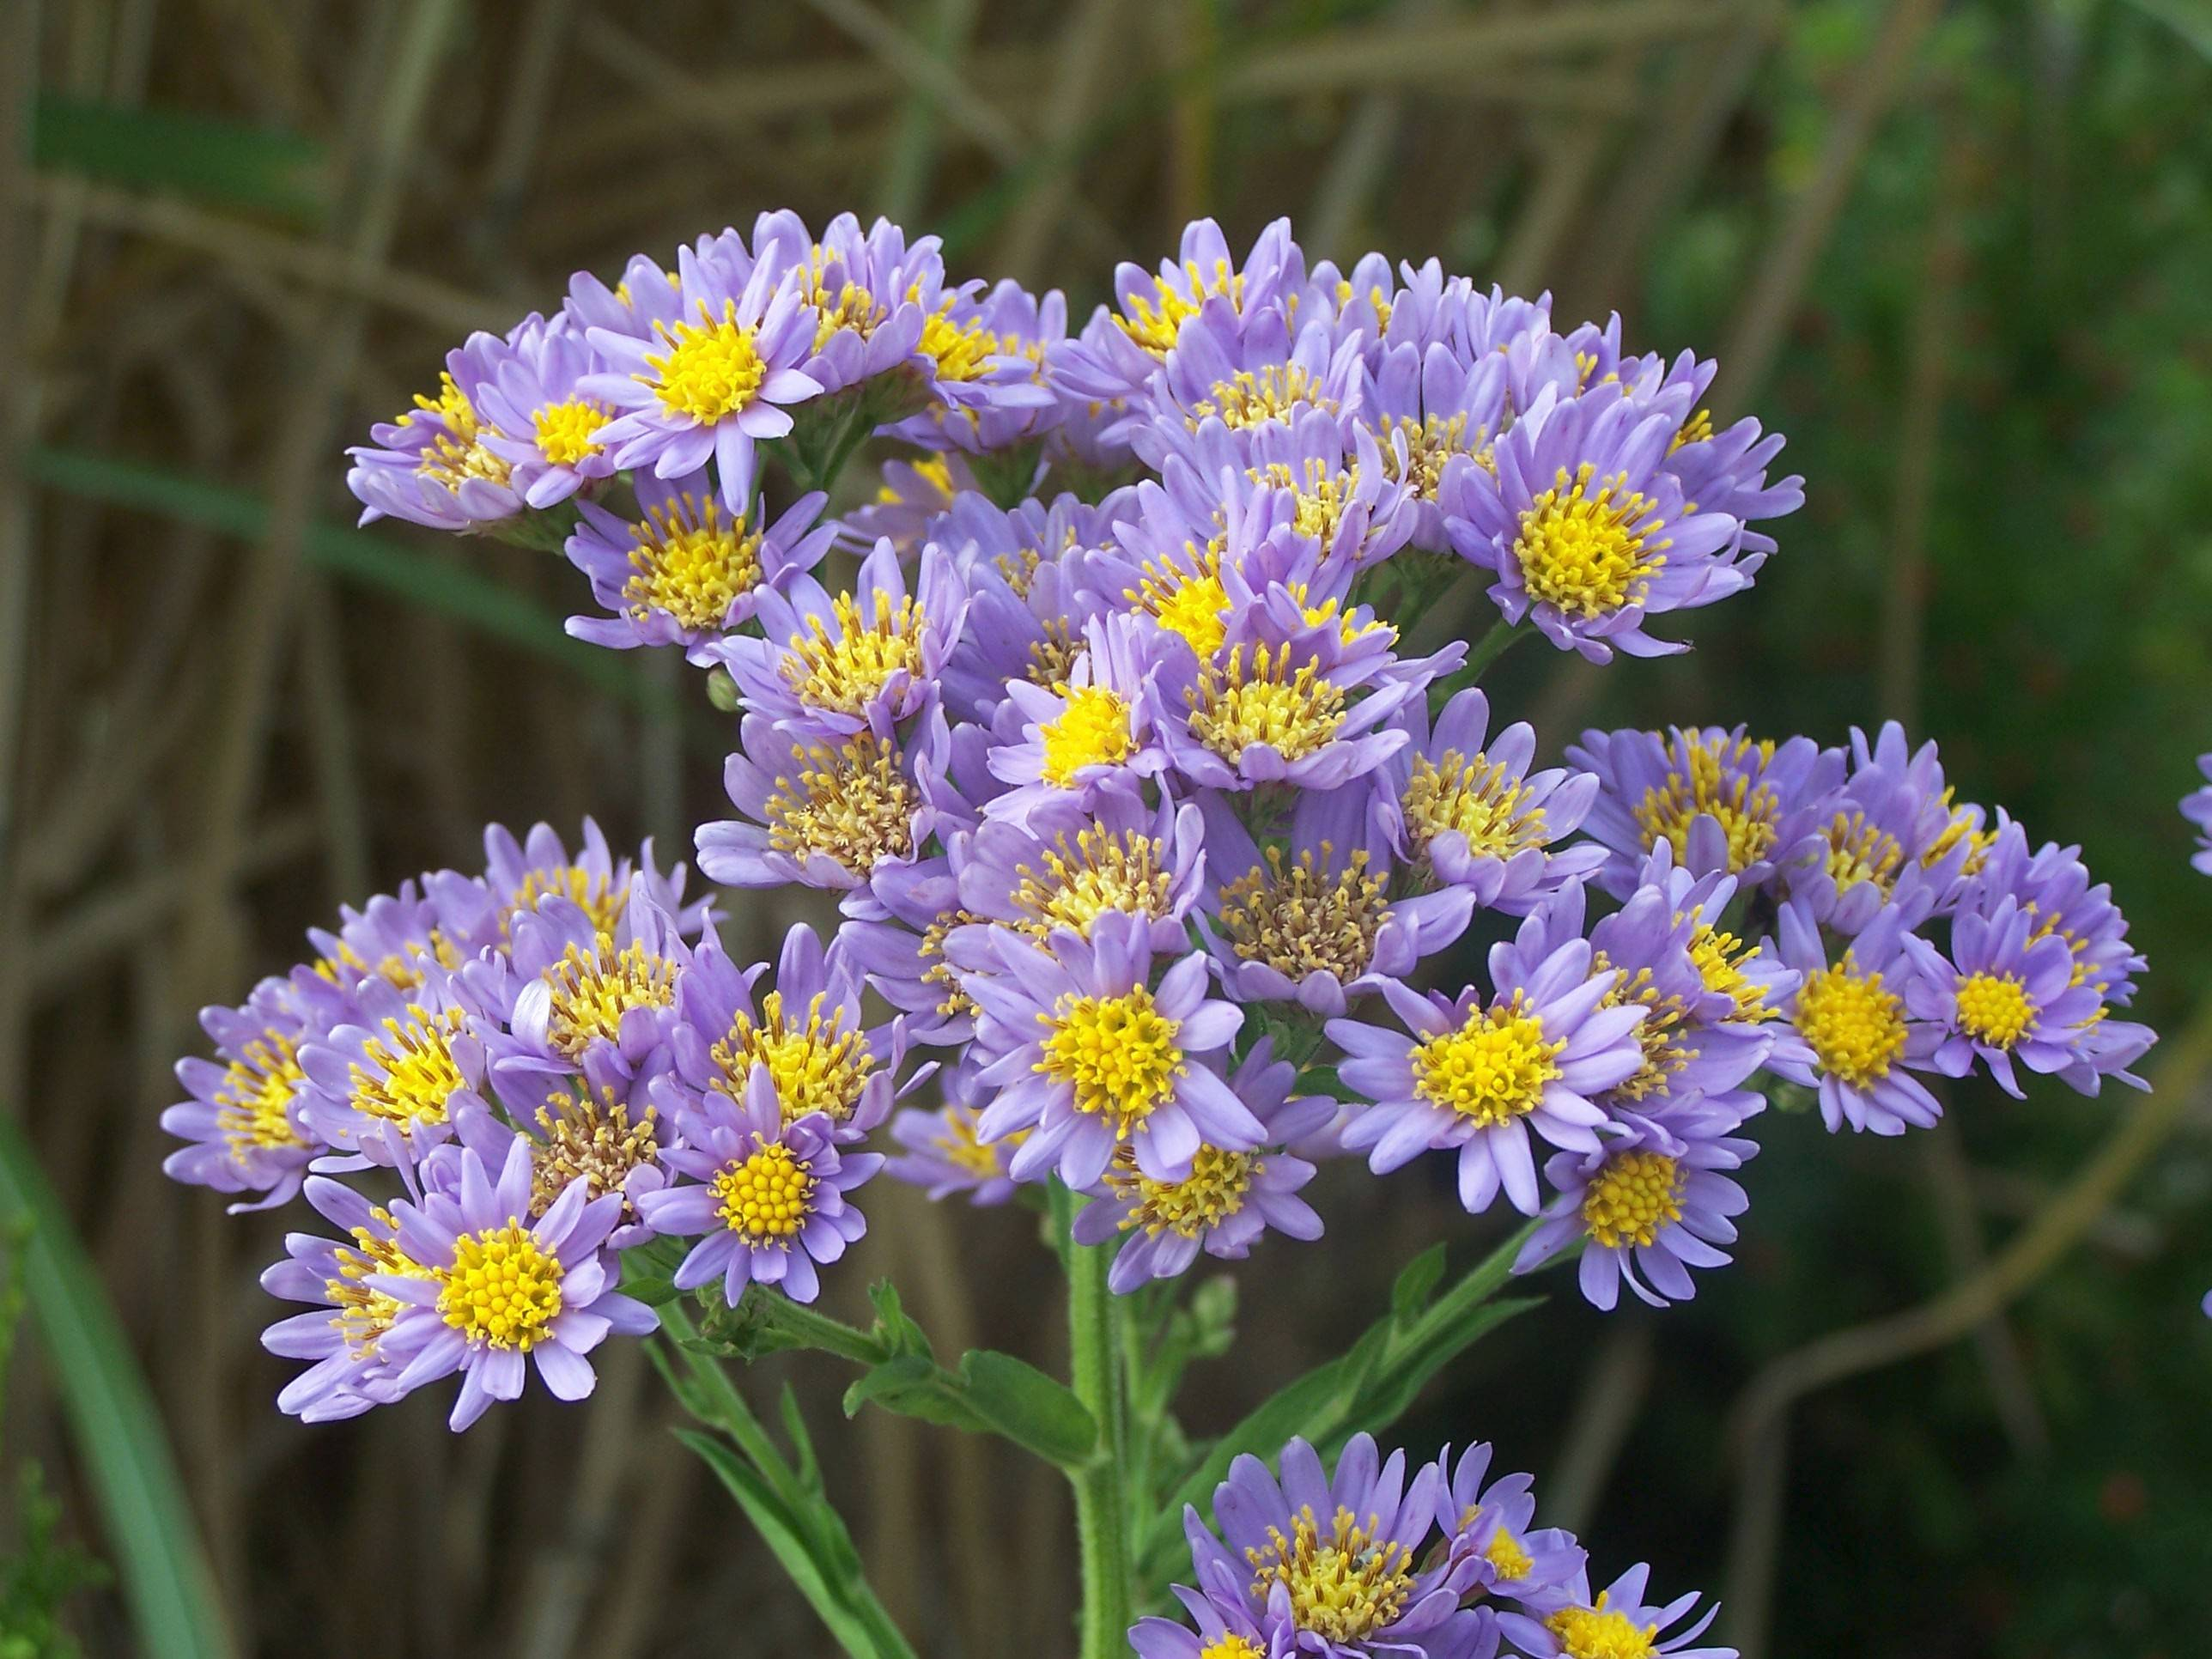 Jindau Aster blooms later than many other varieties.